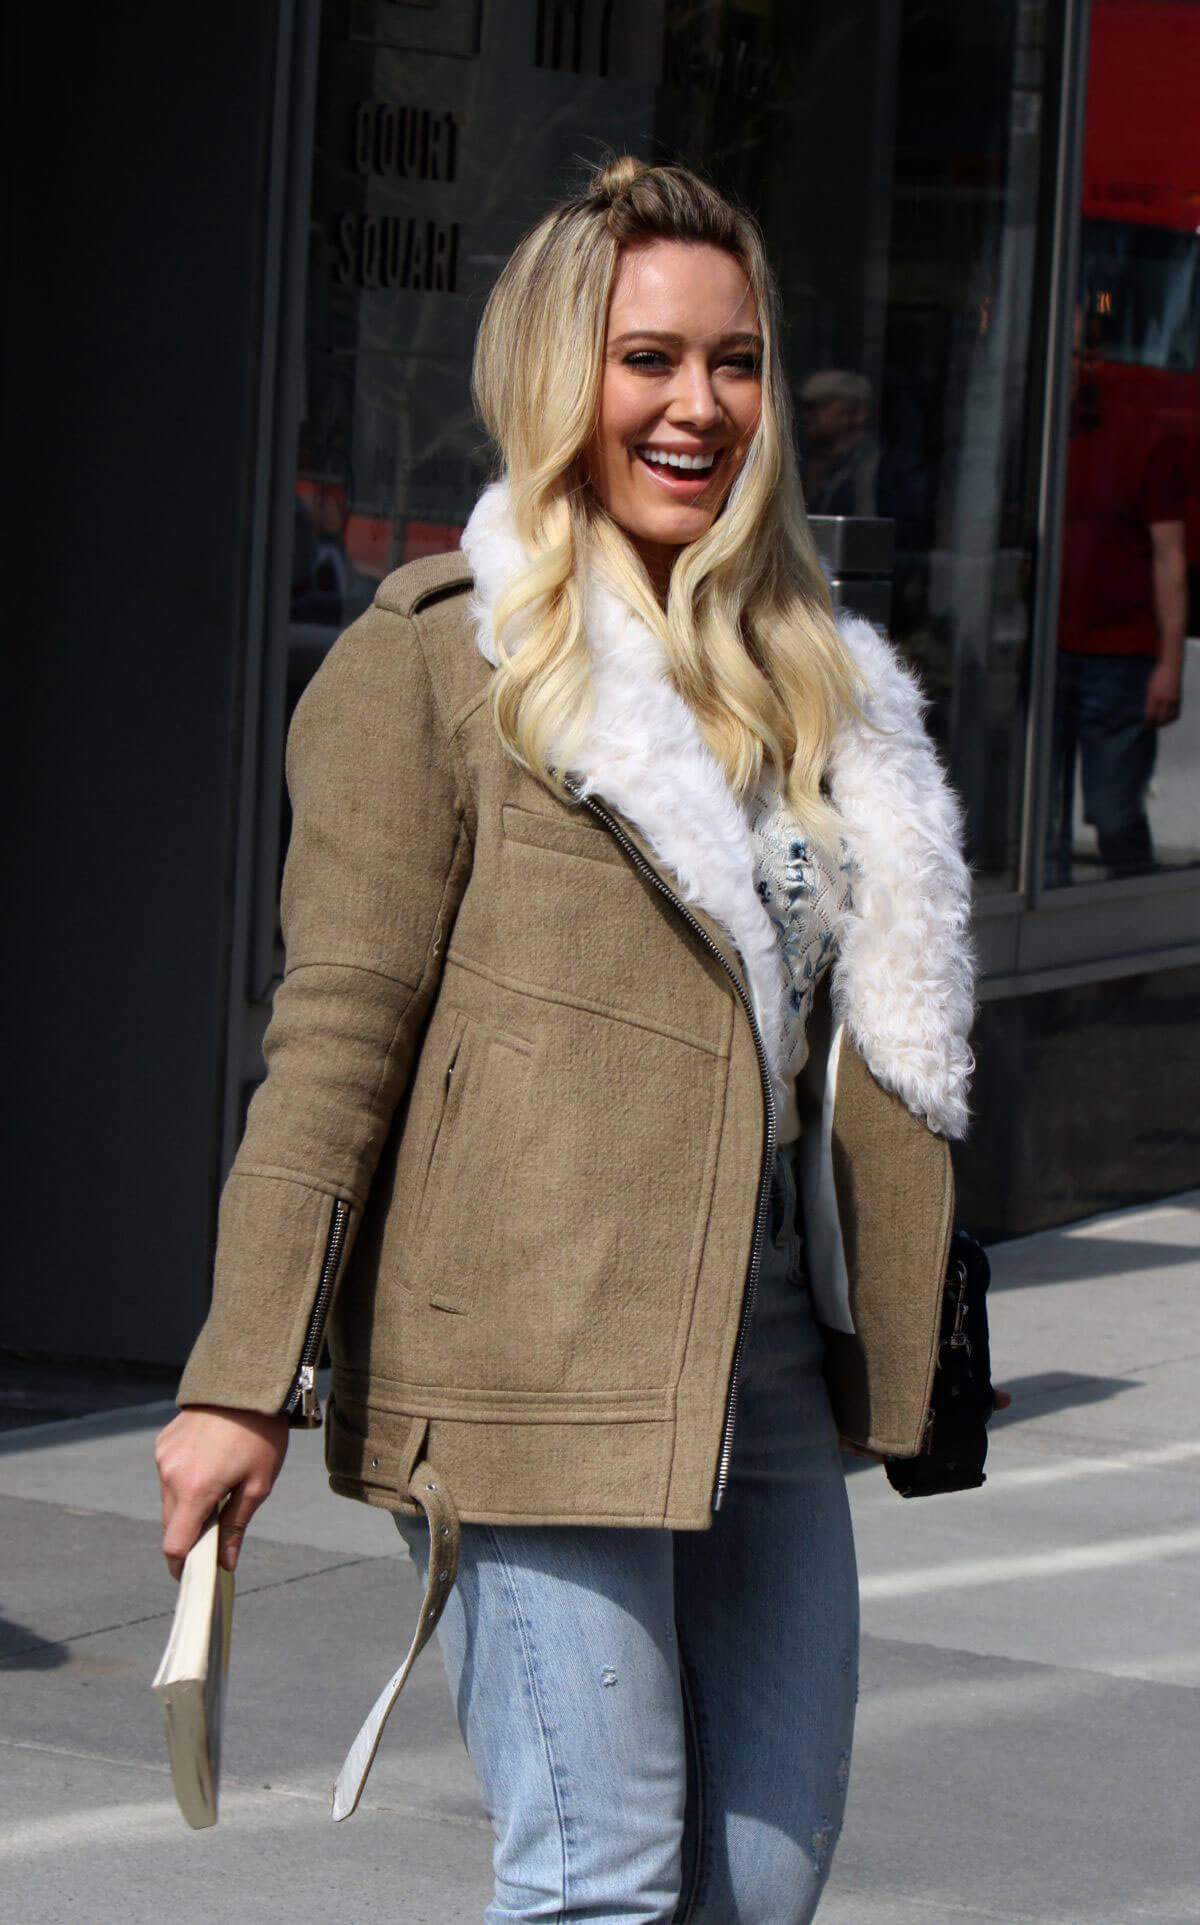 Hilary Duff Stills on the Set of Younger in New York